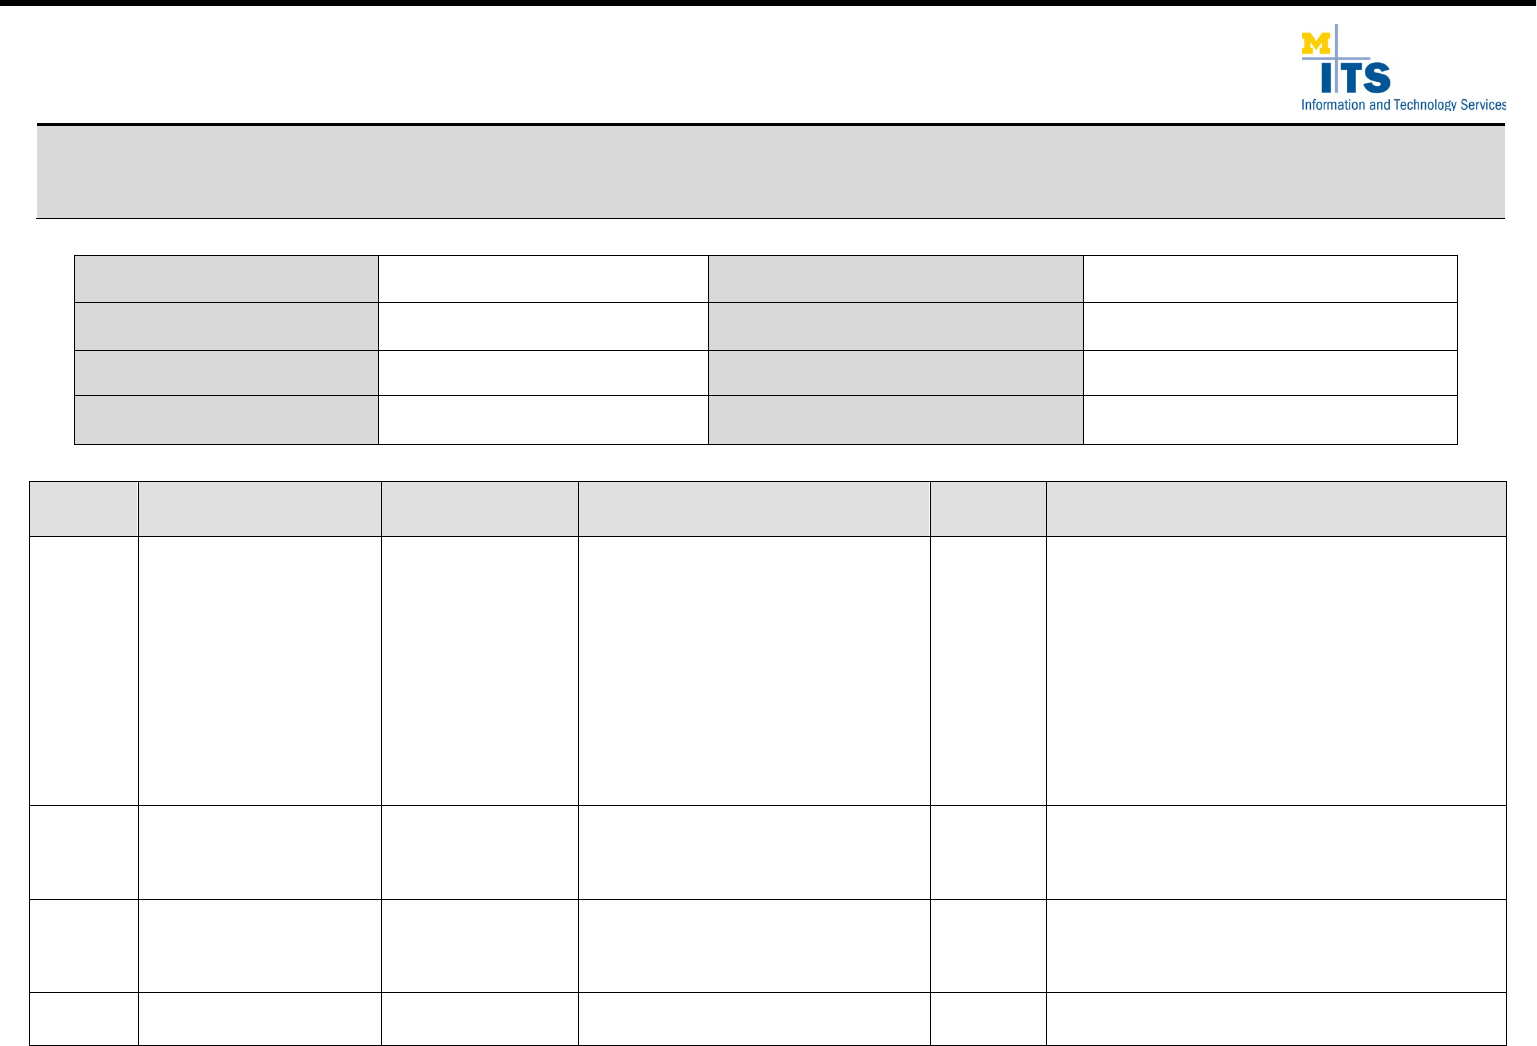 Project Scorecard Template2